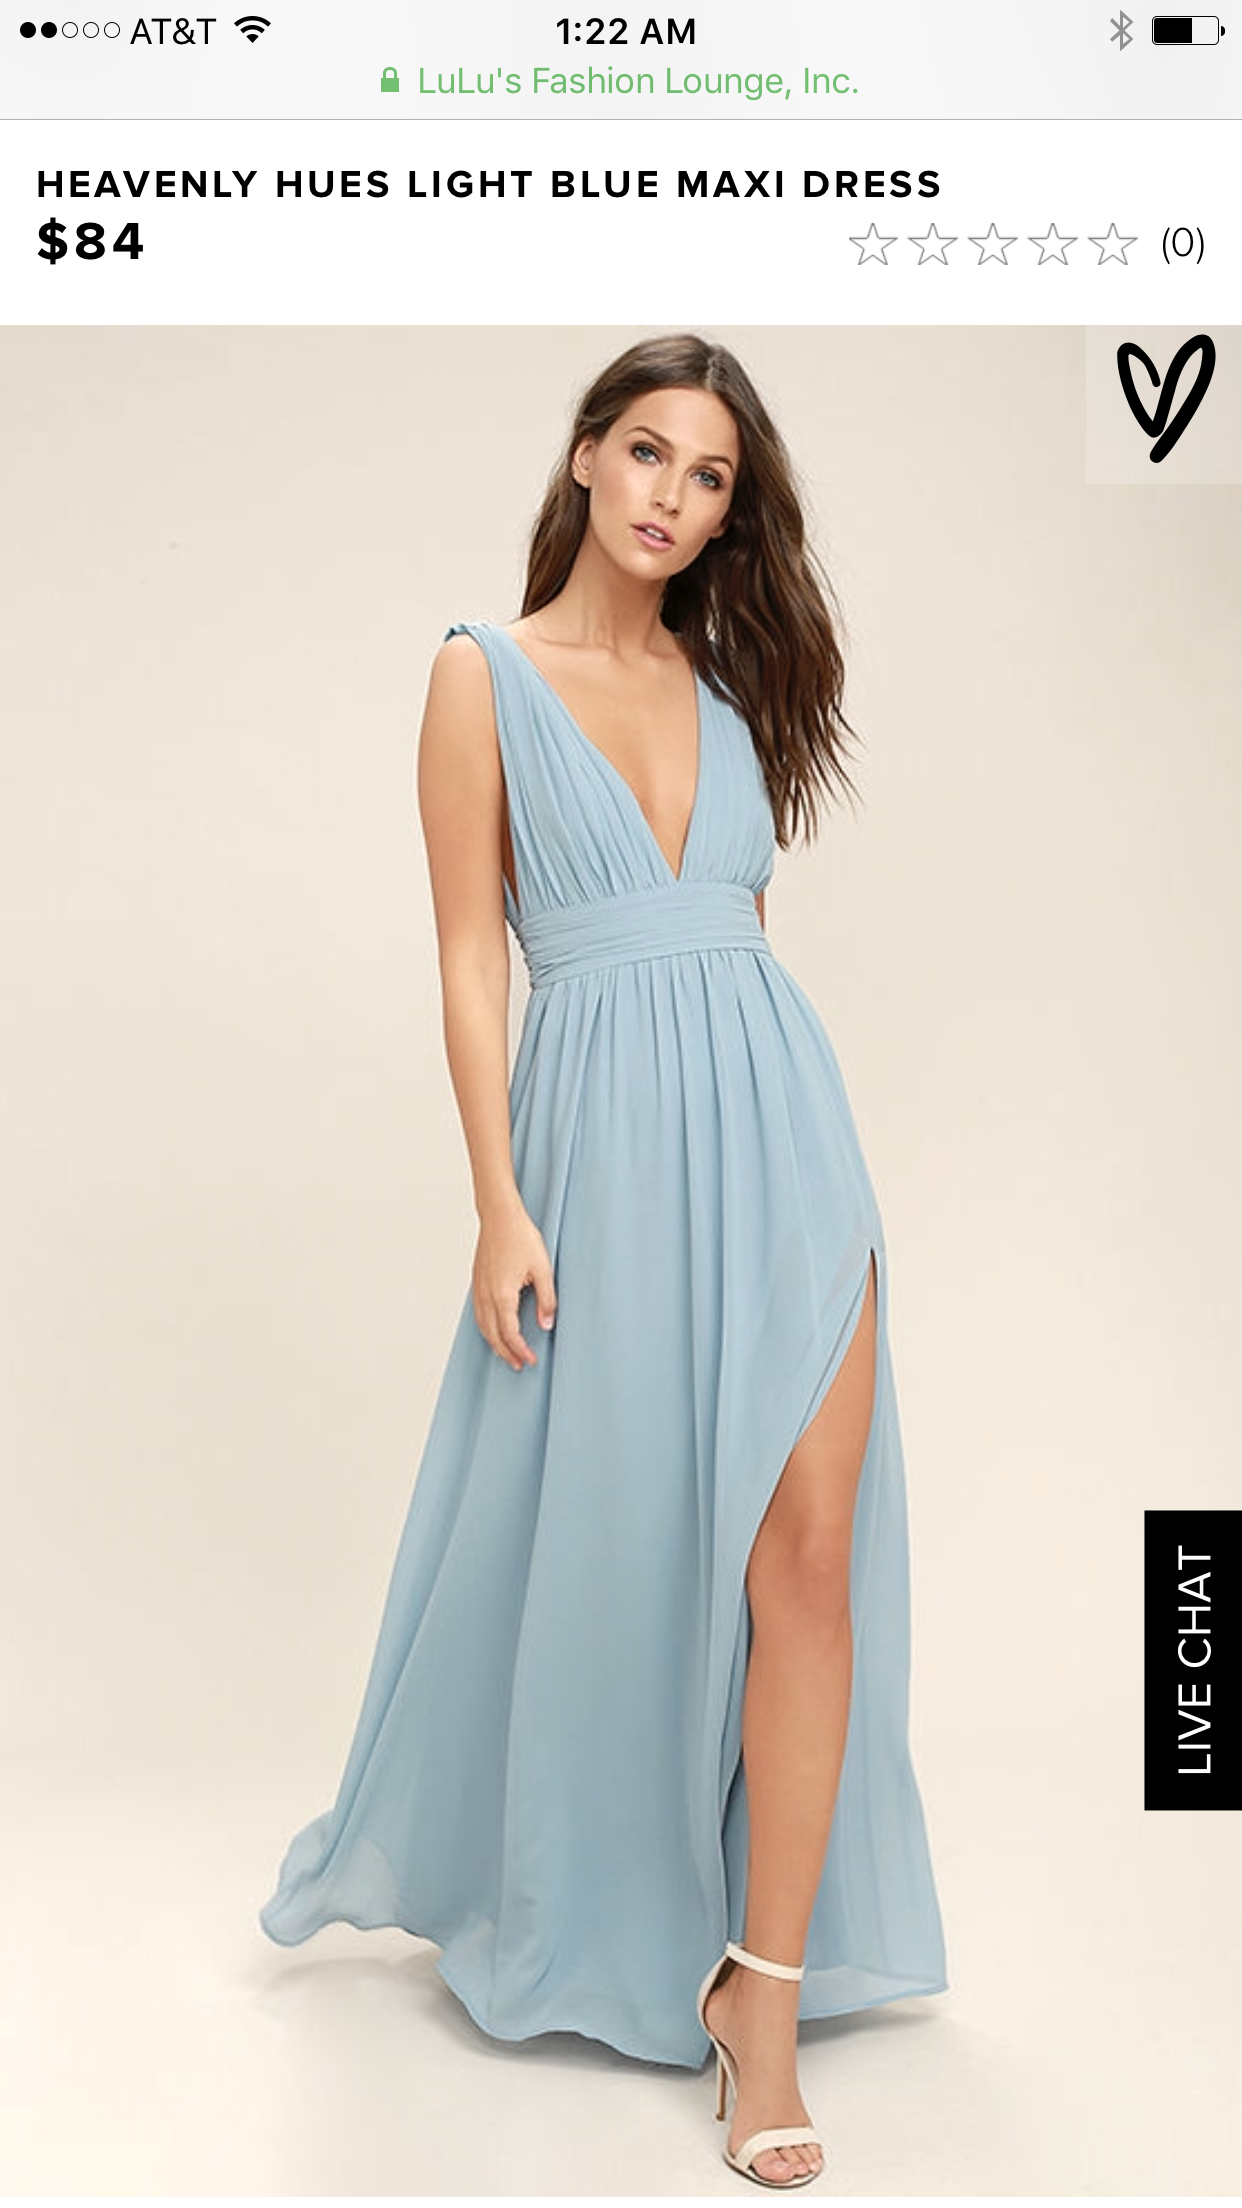 Pin by Stephany on Bridesmaid Dresses | Pinterest | Blue maxi ...